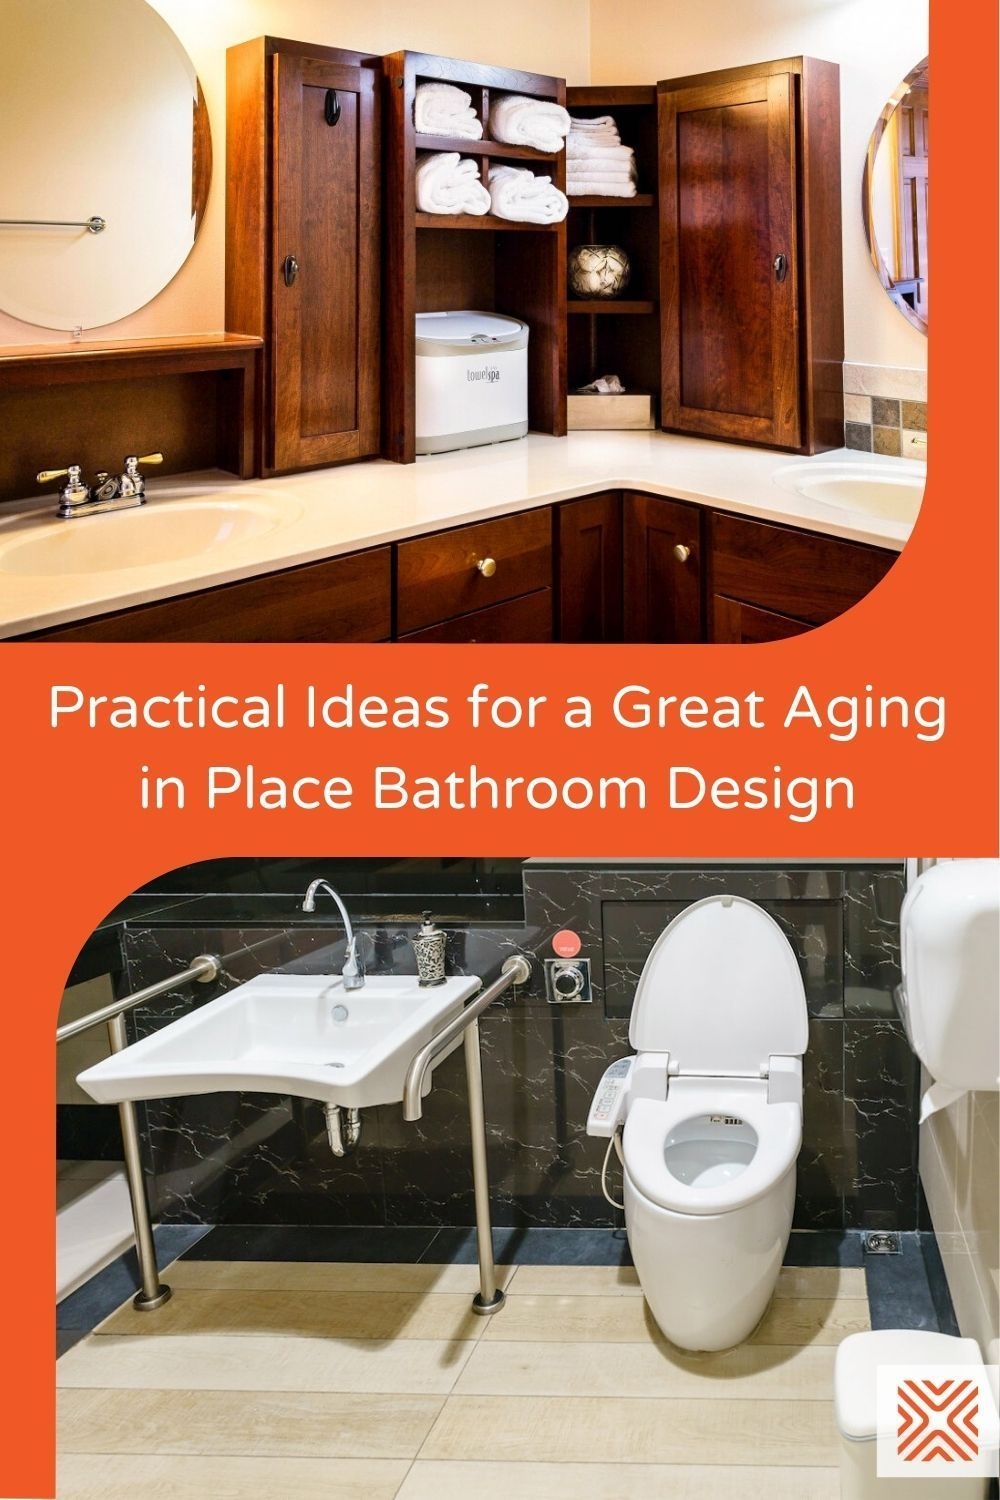 Having a senior-friendly bathroom is one of the most important remodeling projects when it comes to aging in place. So let's have a look at some practical aging in place bathroom ideas for your home